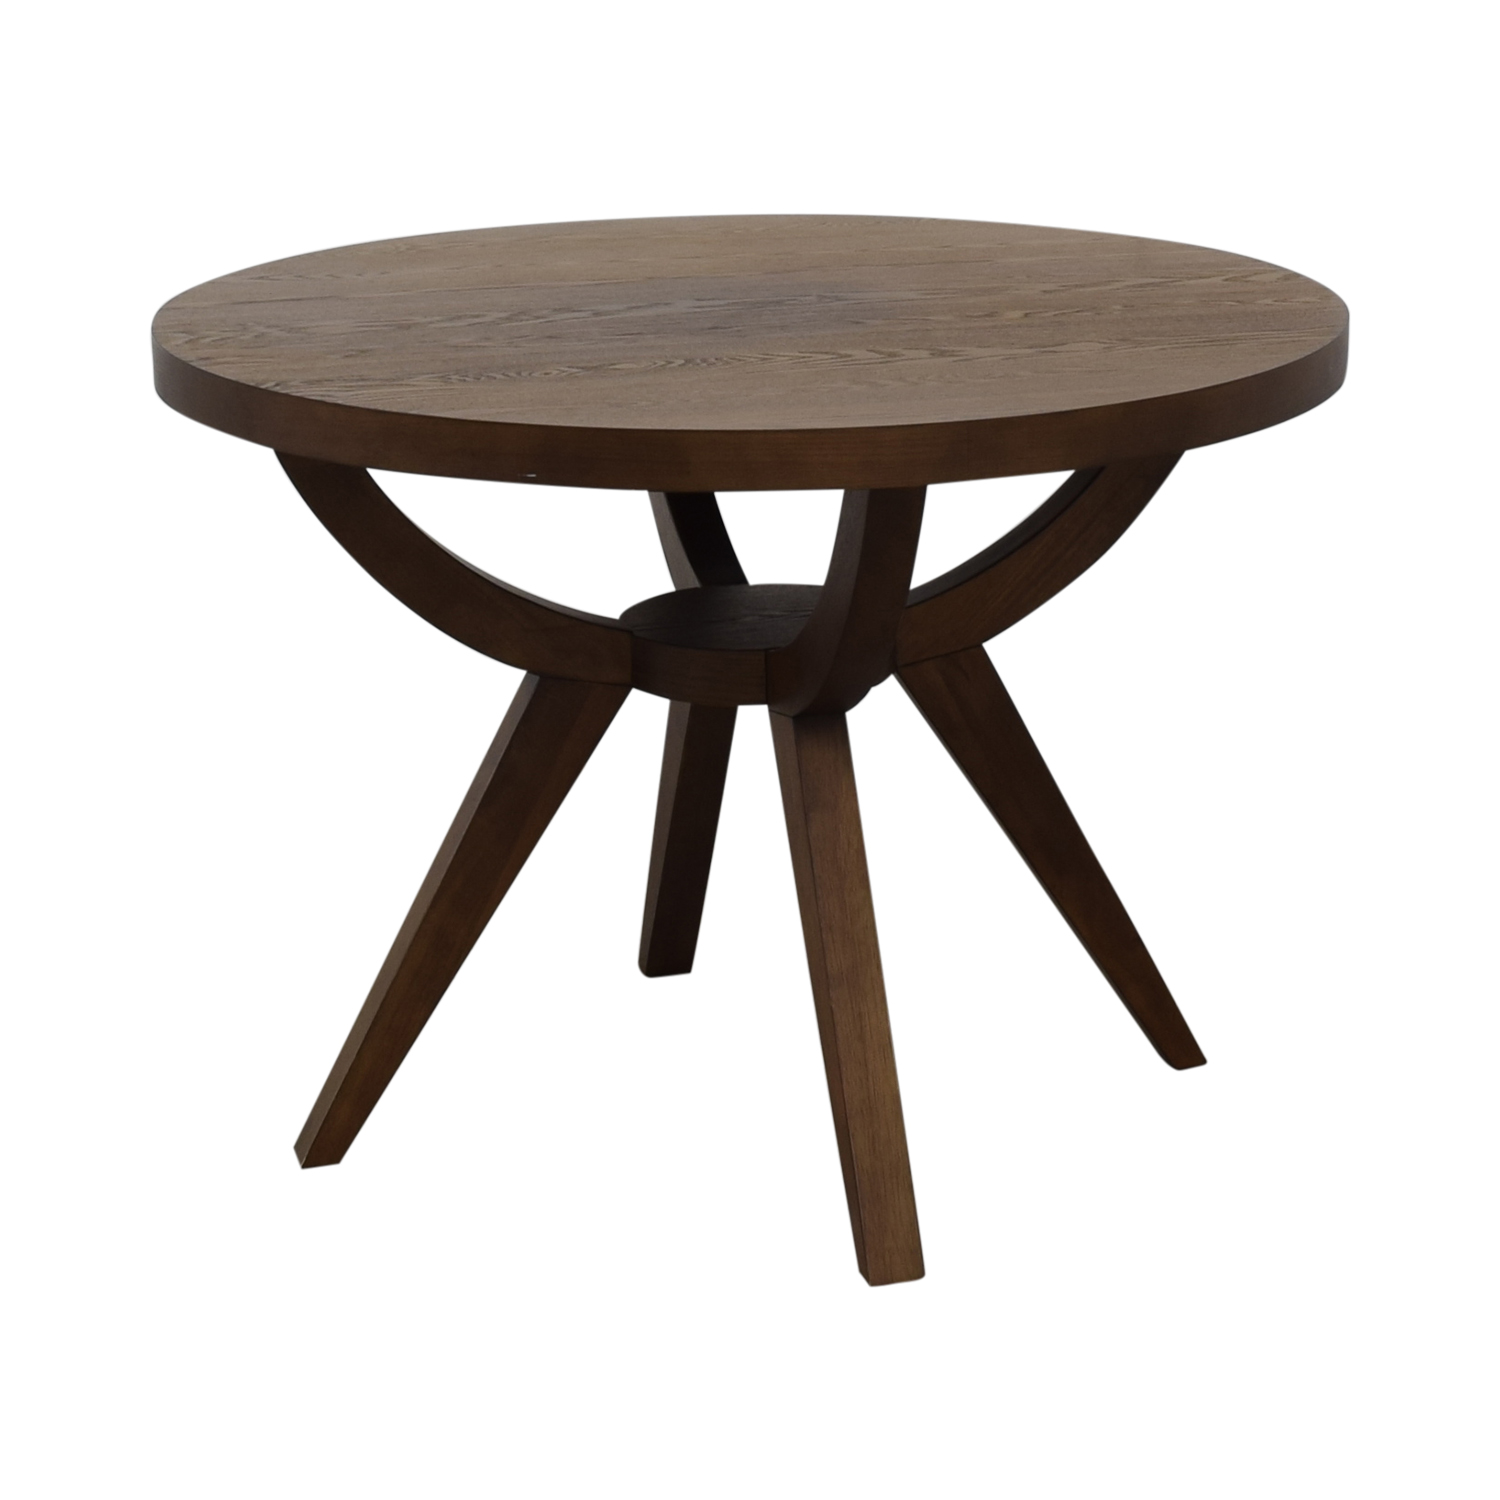 West Elm West Elm Arc Base Pedestal Dining Table dimensions